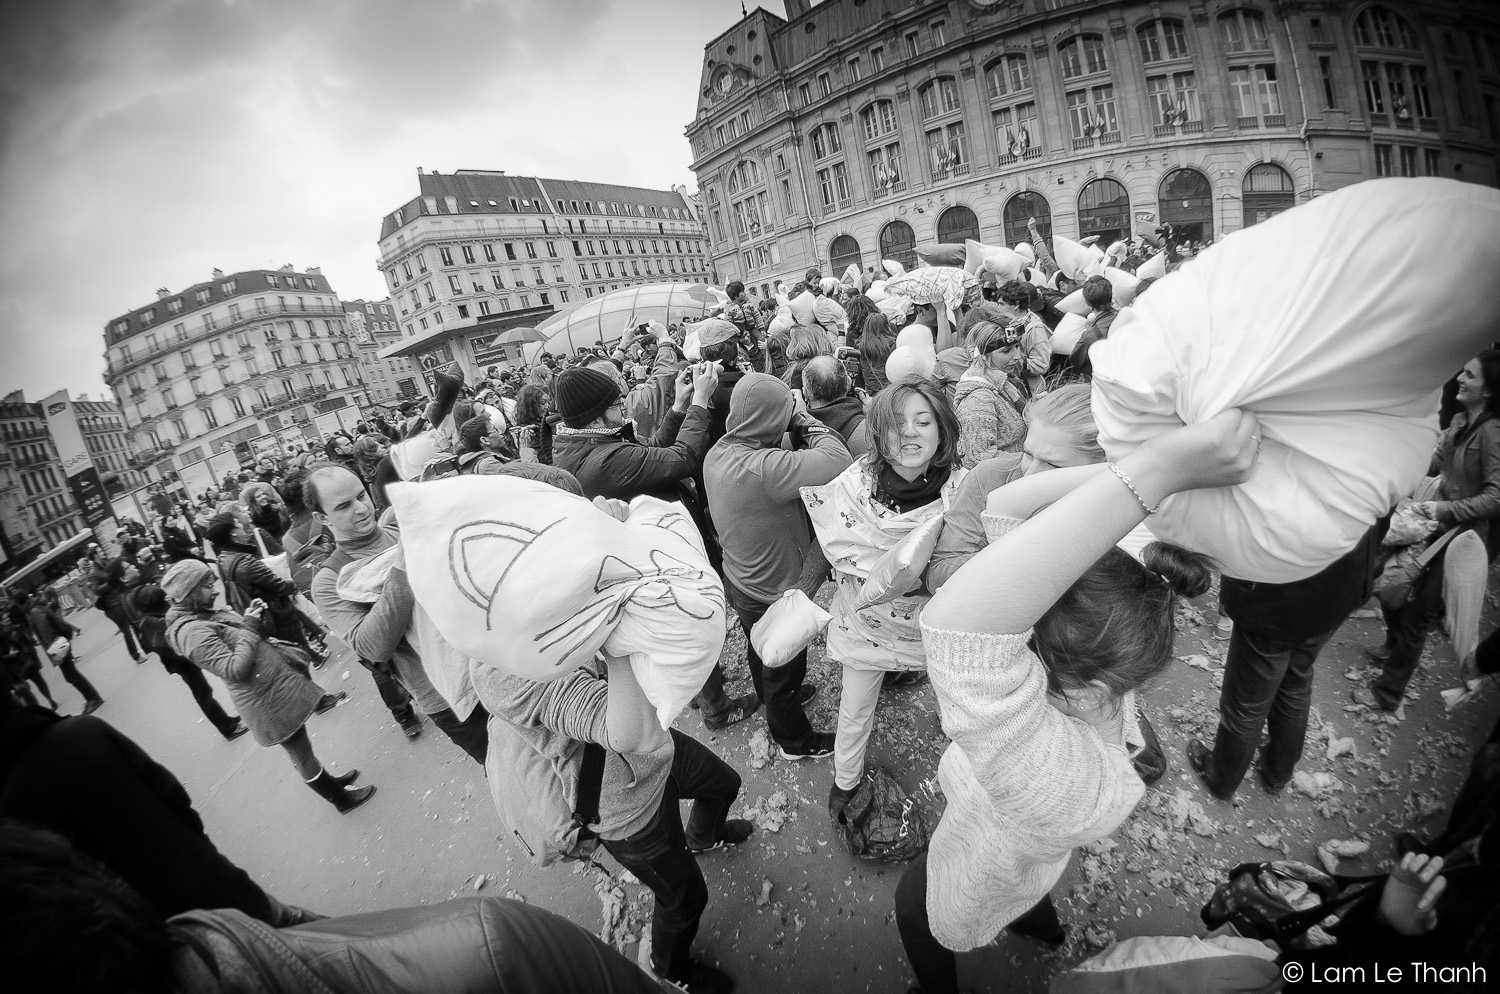 Pillow Fight Day @ Paris – Gare Saint Lazare